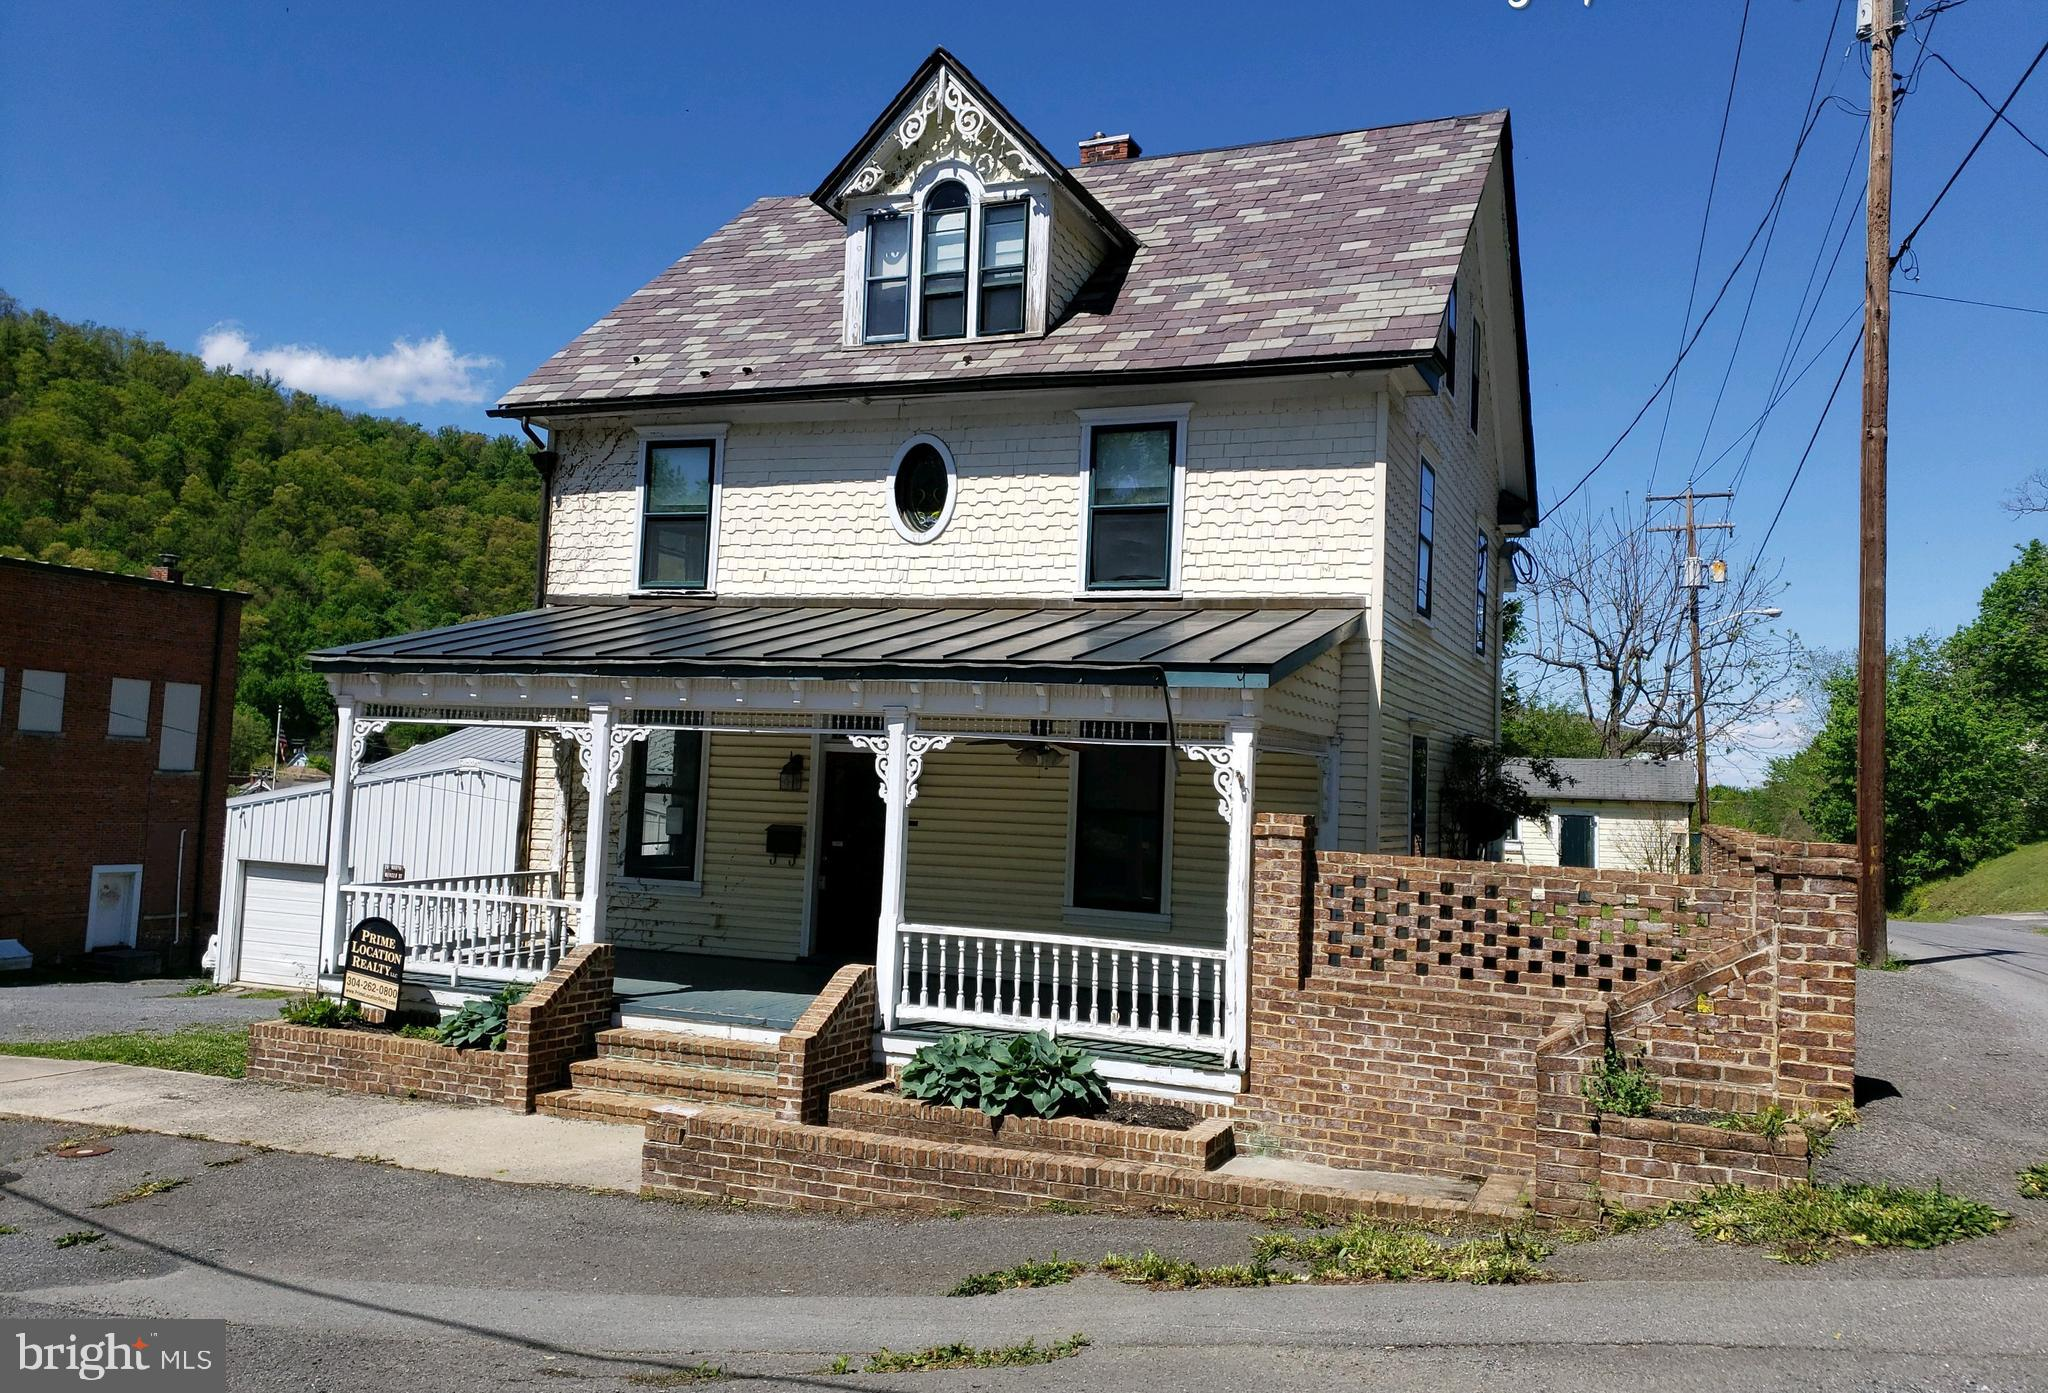 Close to downtown, colonial style home boasts of potential. With 5 BRs, 5 full BAs, a full basement and outbuilding for storage, fenced rear yard, covered porches and small apartment type setting in attic with a kitchenette and separate laundry area, home could be perfect for entertaining.